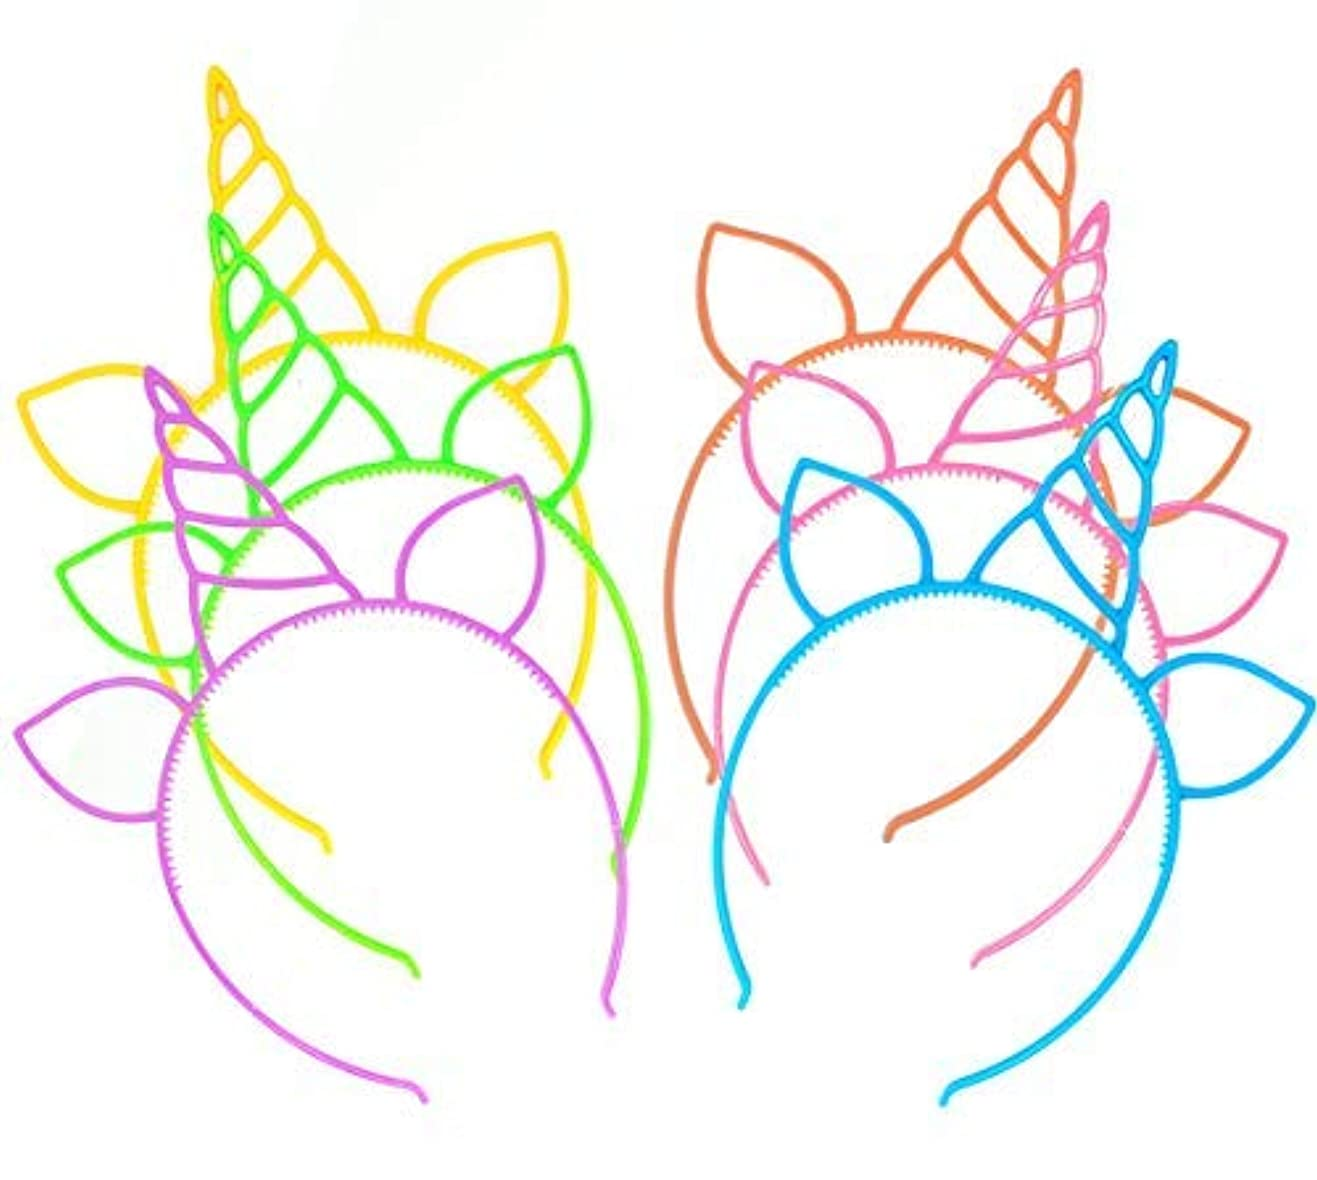 空洞スピーカーひも12 Pcs Unicorn Headbands Theme Birthday Party Favor Supplies Gift Costume [並行輸入品]